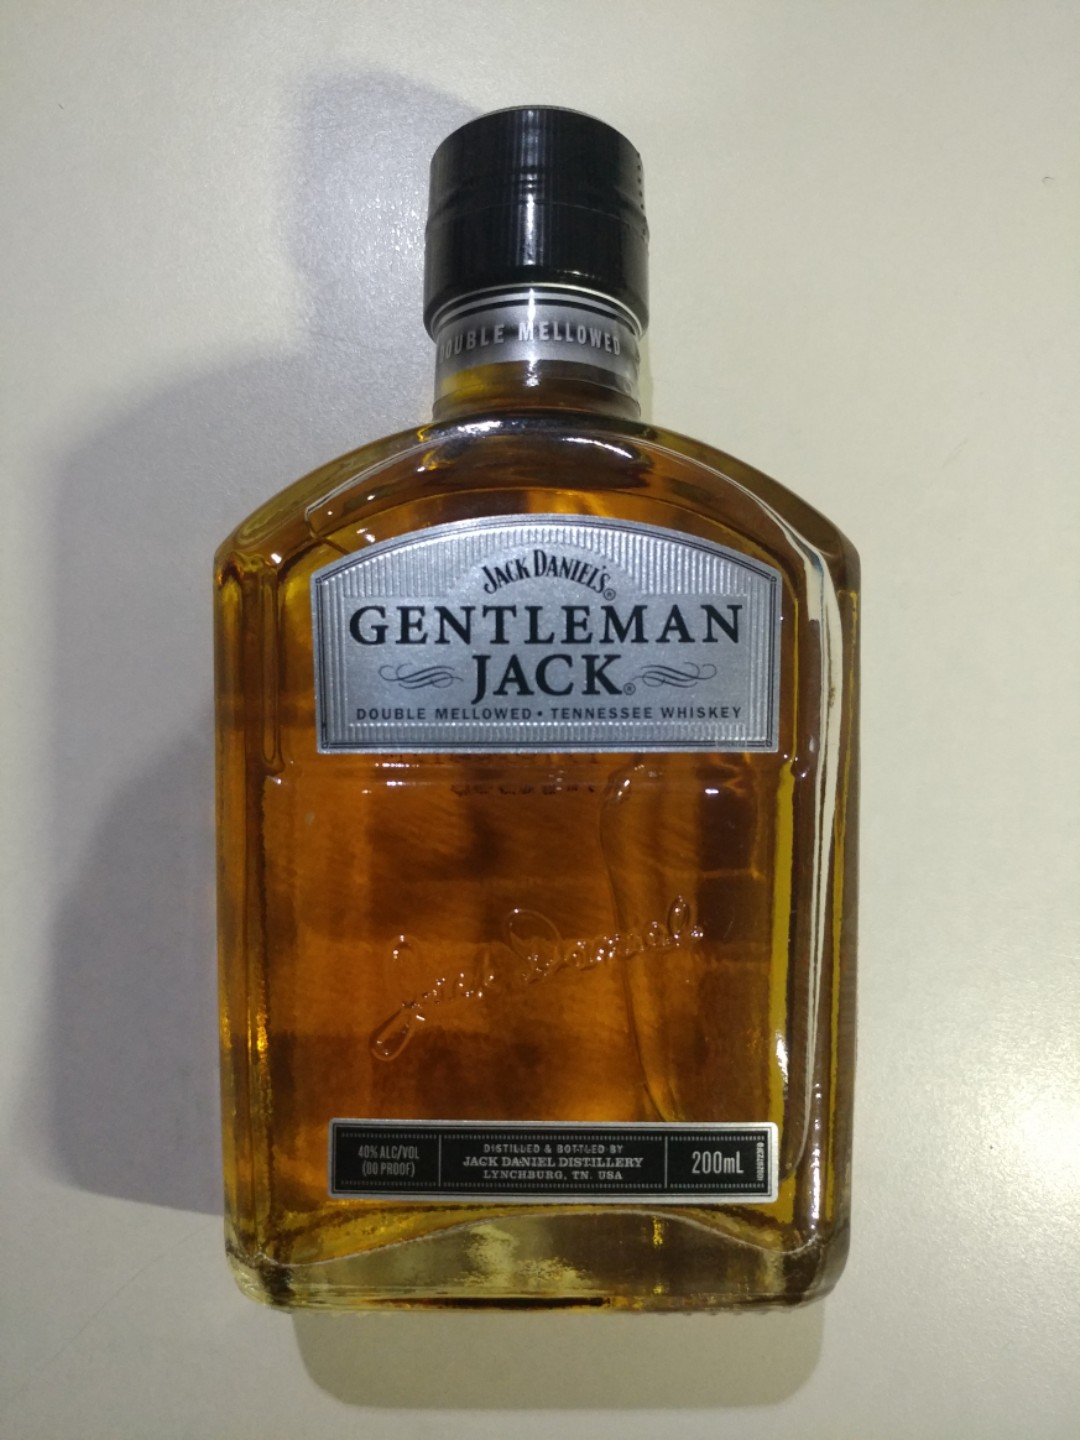 Gentleman Jack 200ml, Food & Drinks, Non-Alcoholic Beverages on Carousell